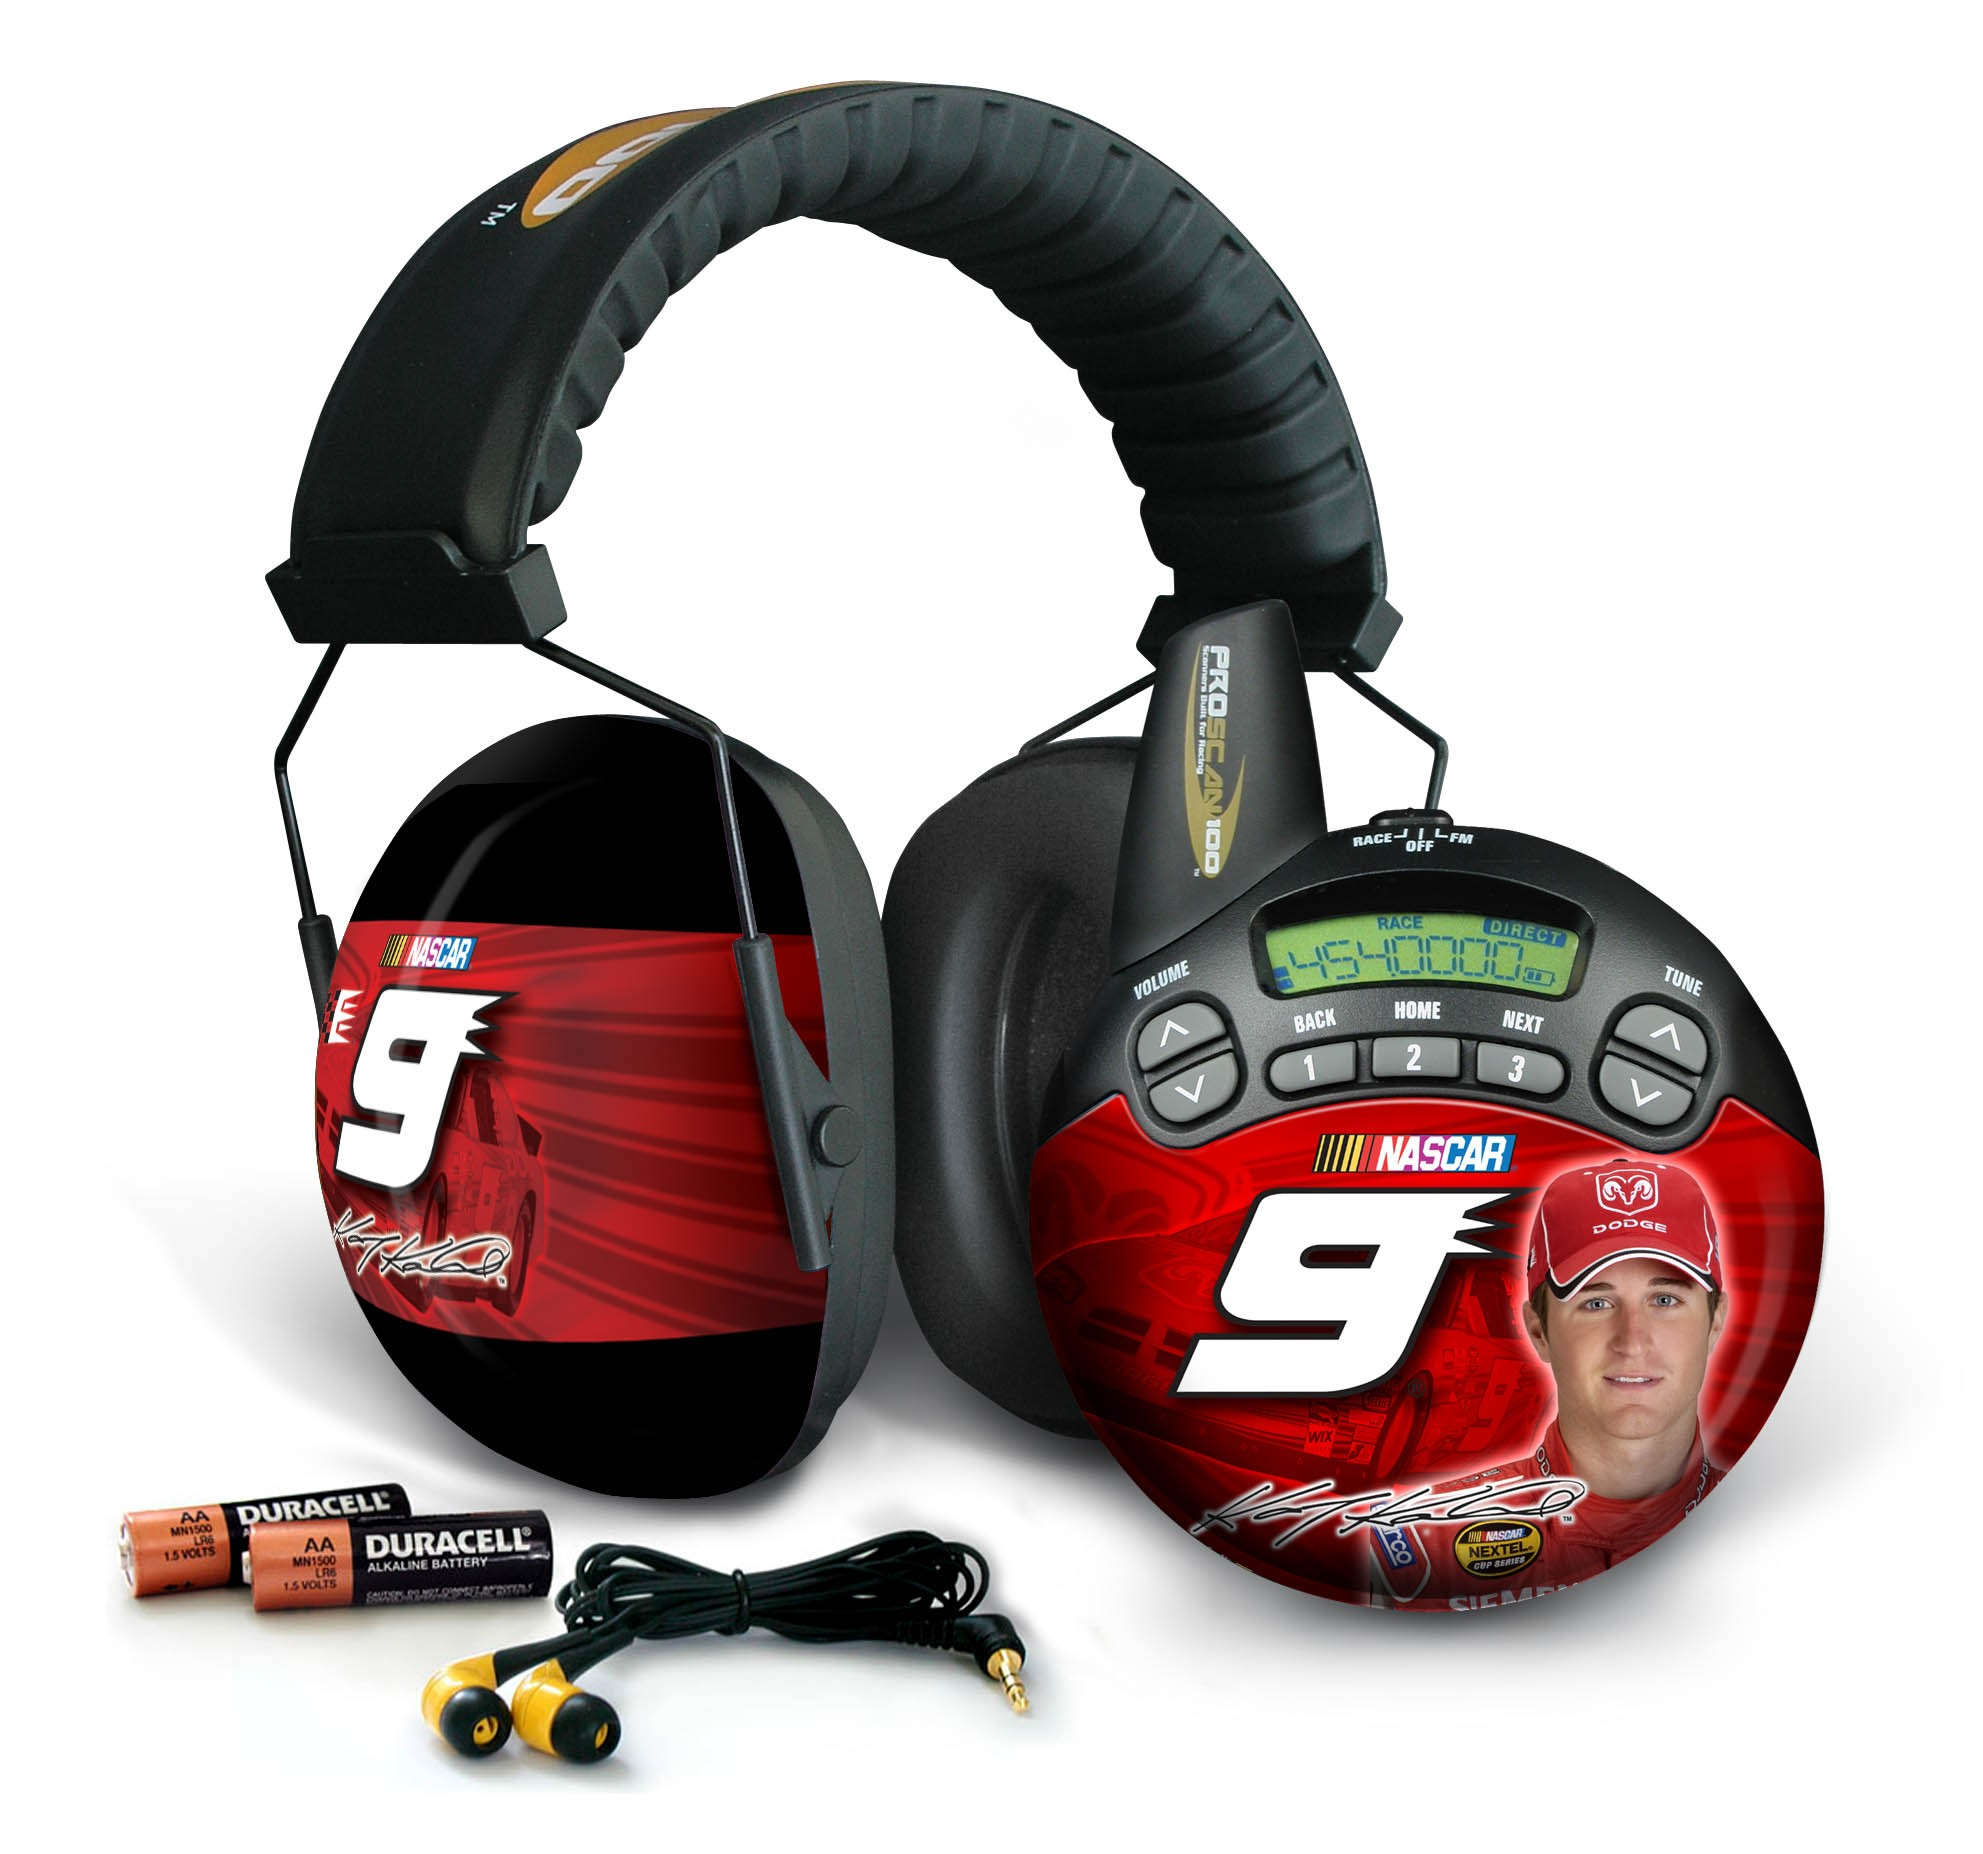 Kasey Kahne #9  Nascar ProScan 100 Trackside Scanner and Earmuff